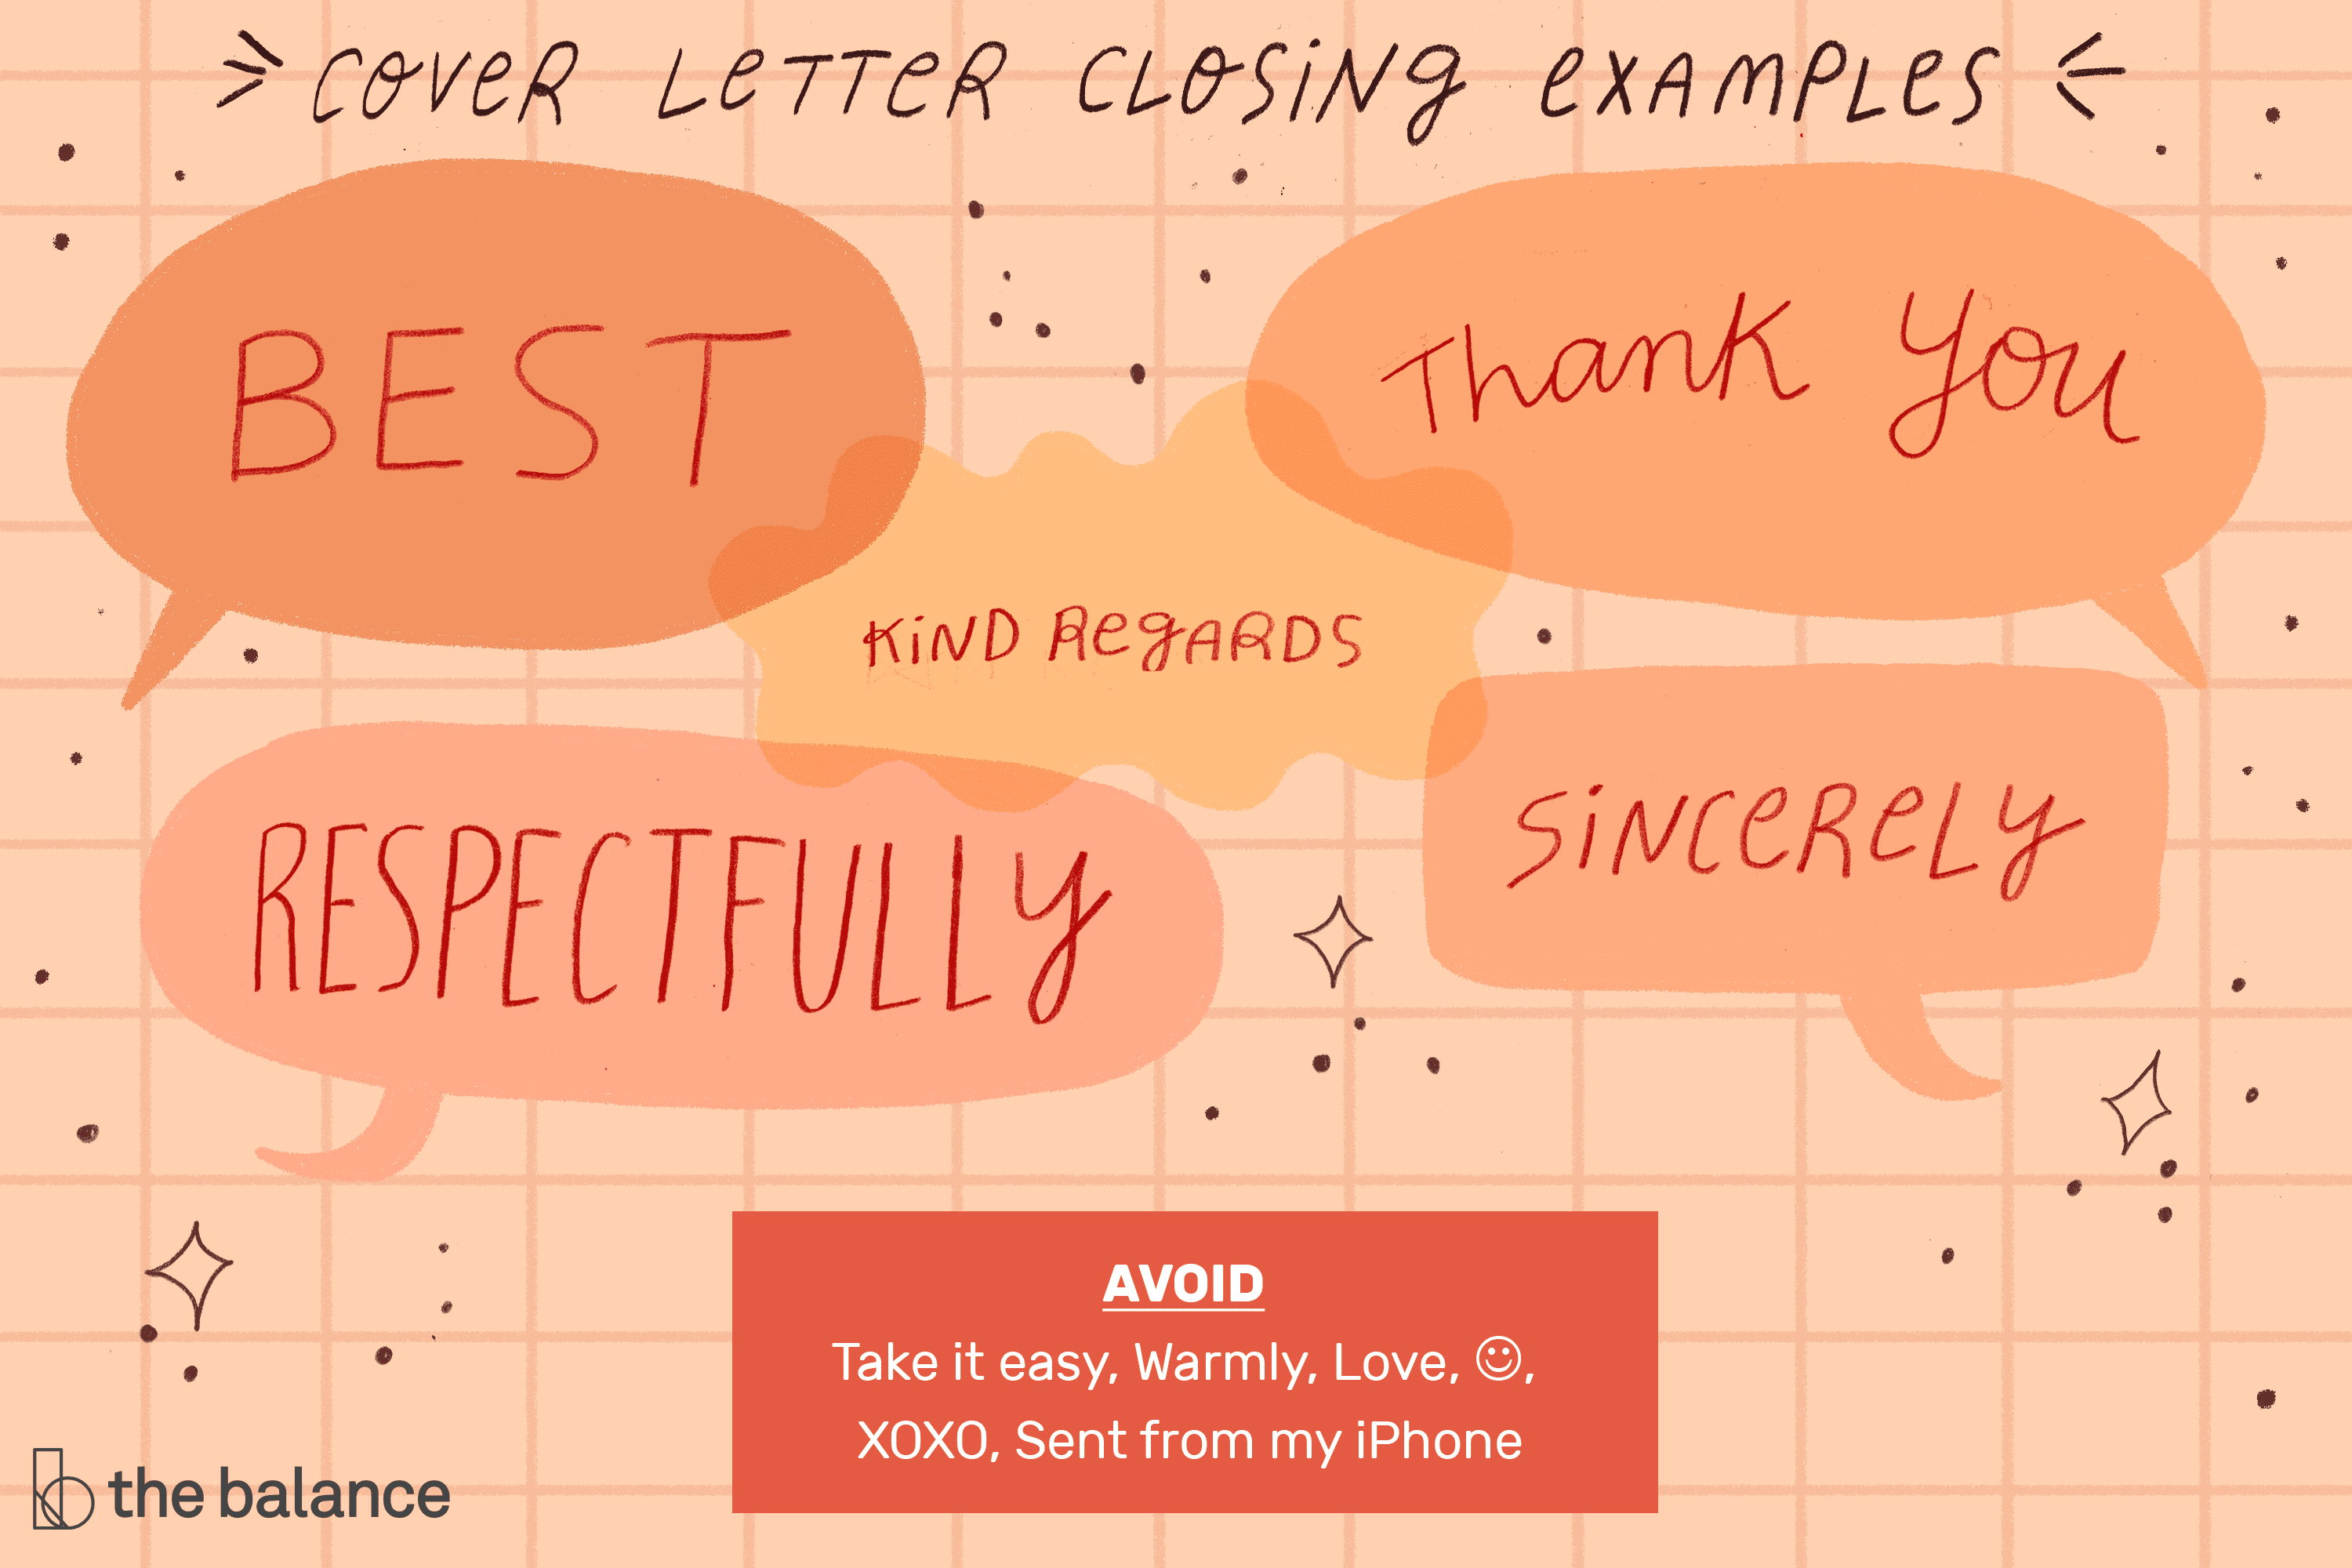 Cover Letter Closing Examples